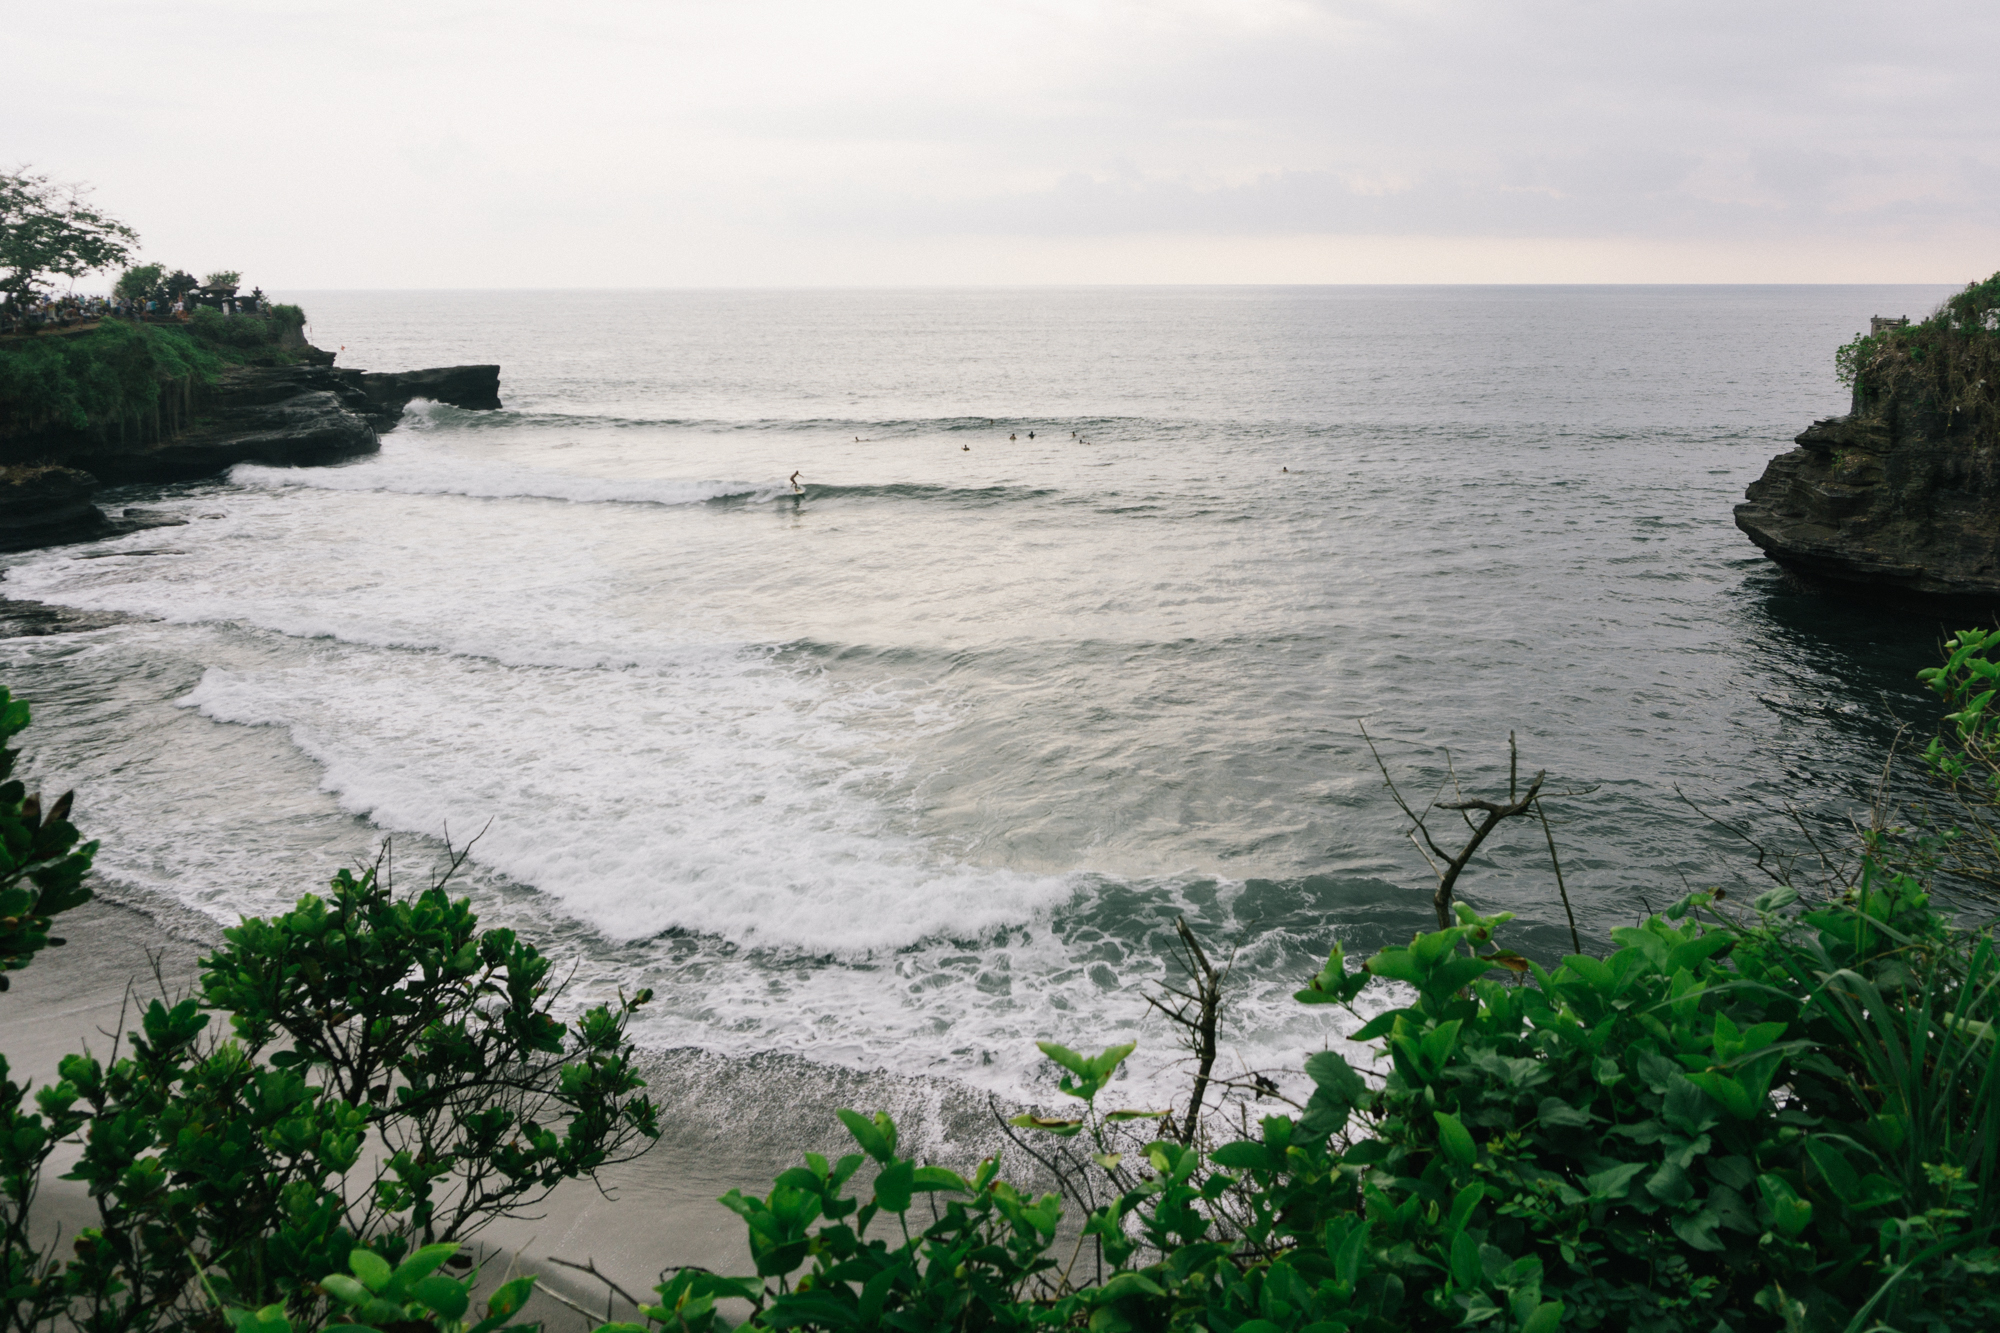 Surfers take advantage of the waves between the two temples of Tanah Lot, Bali.